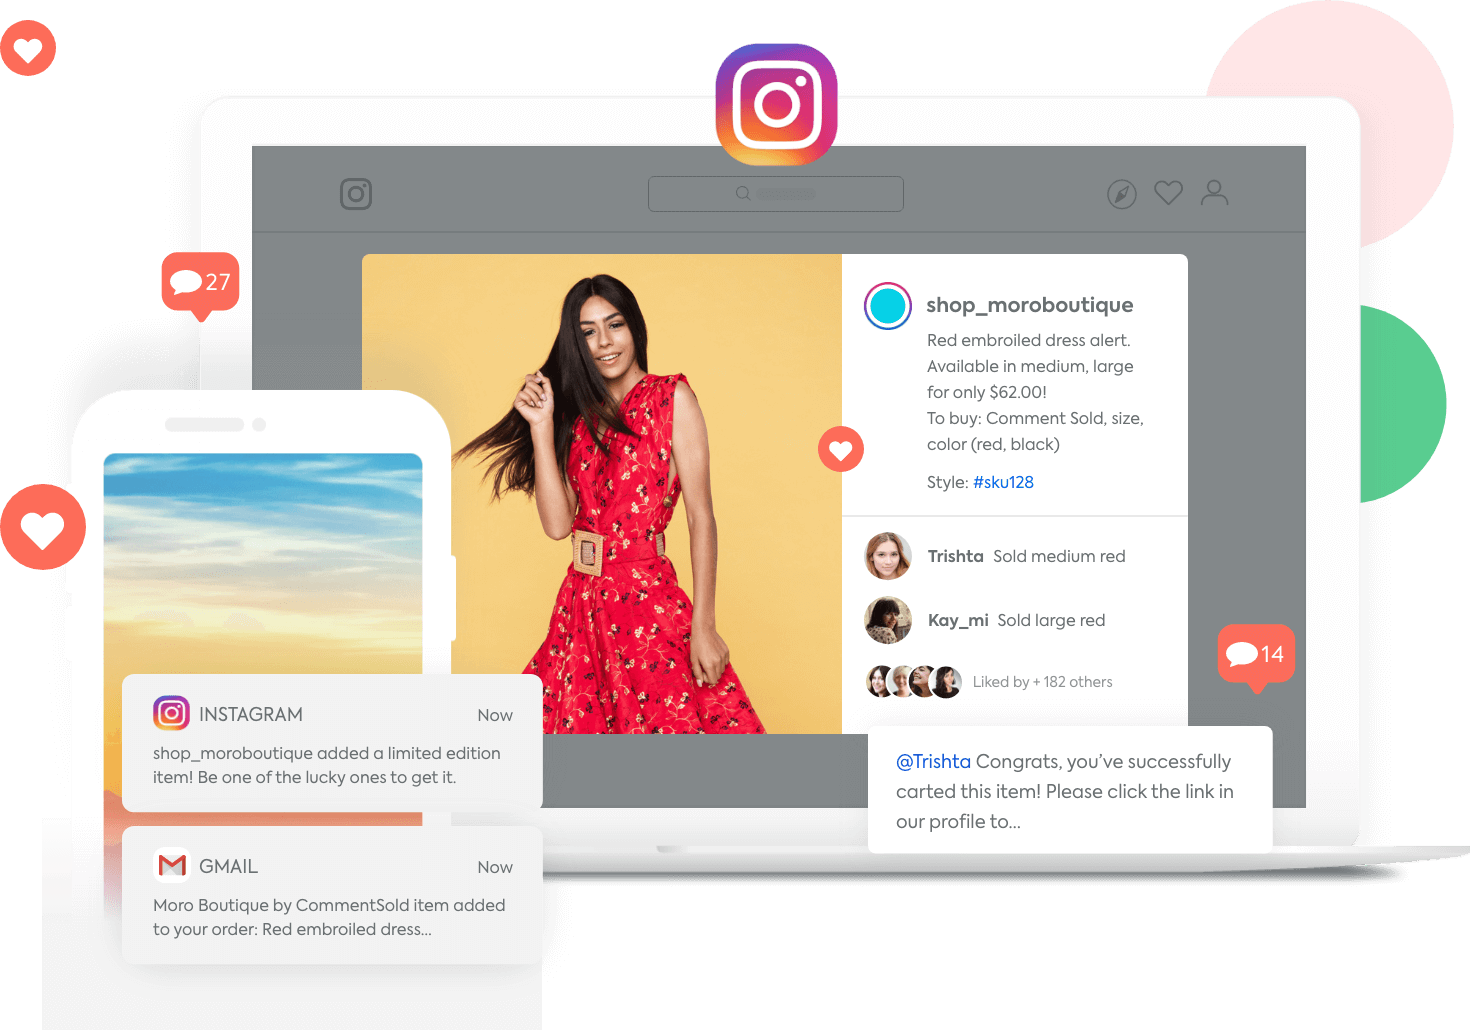 Instagram post selling a dress with comment purchases and notifications from Instagram and email